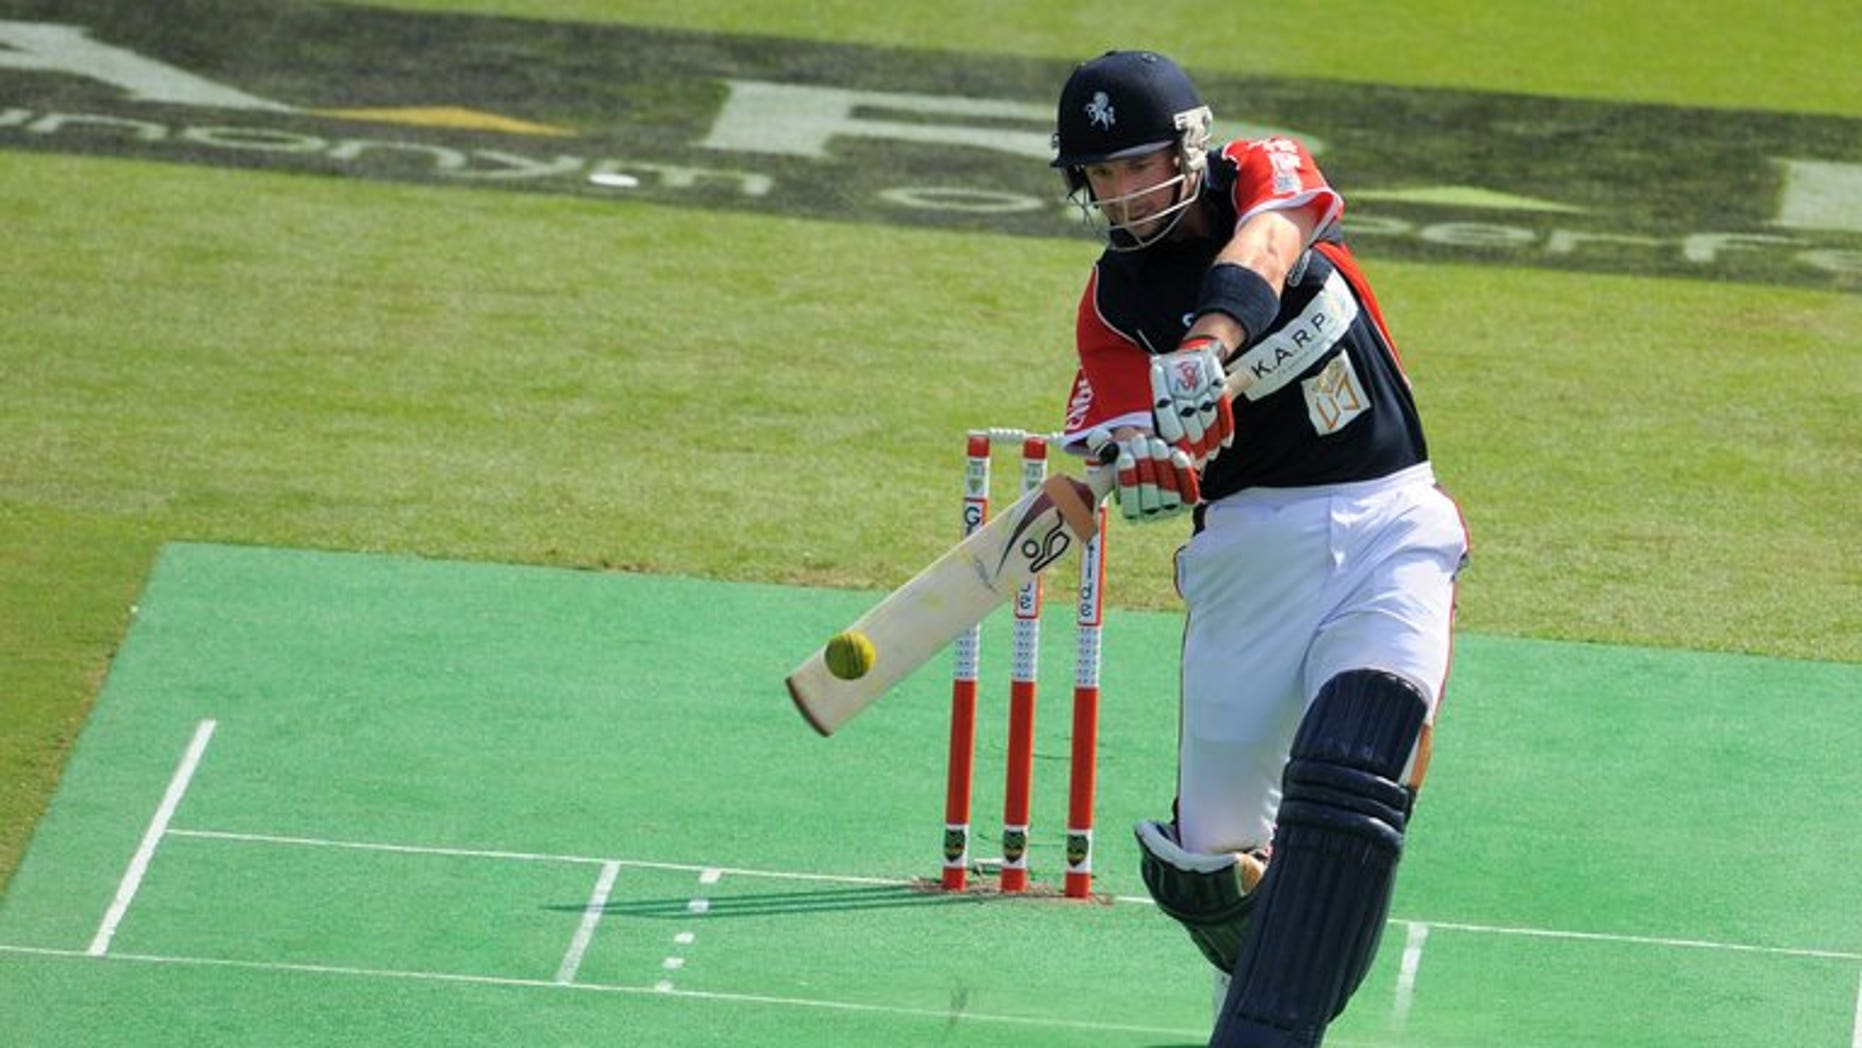 England's Darren Stevens hits a shot during a cricket sixes match against India on October 31, 2009 at the Kowloon cricket club in Hong Kong. Stevens on Wednesday admitted to being charged by the International Cricket Council with failure to report attempted corruption in the Bangladesh Premier League.